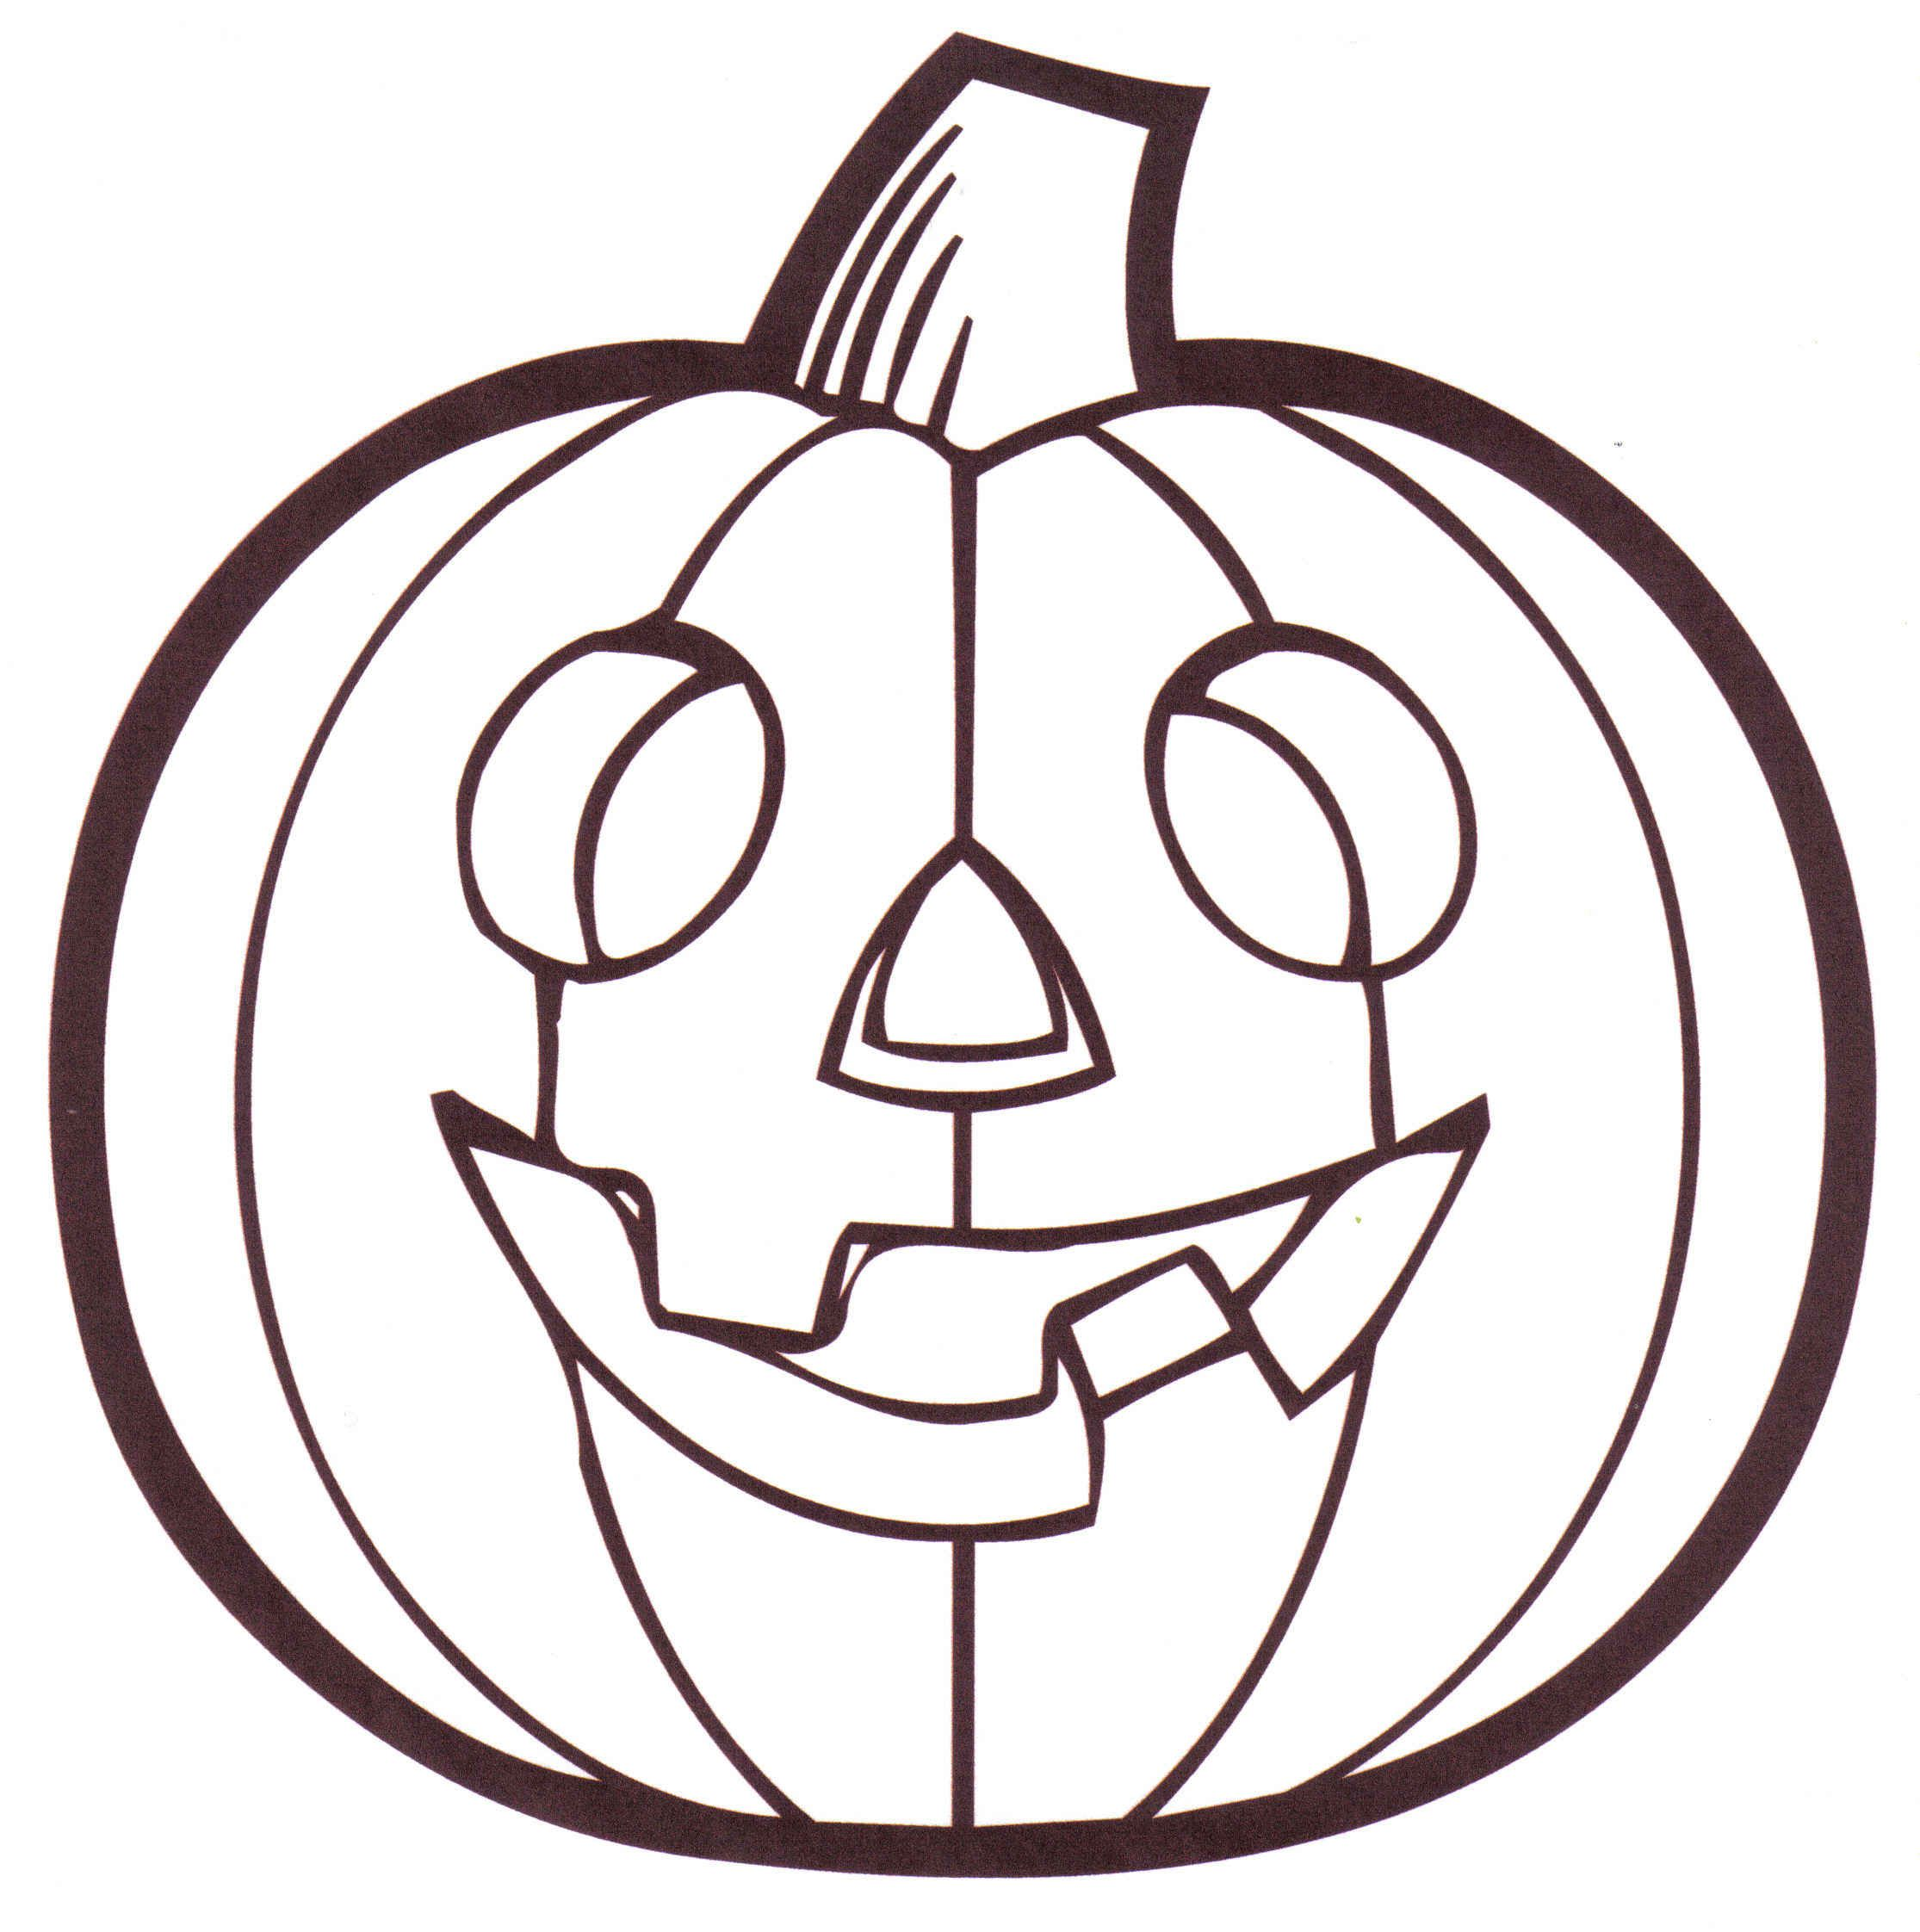 Free Pumpkin Outline Printable Download Free Clip Art Free Clip Art On Clipart Library